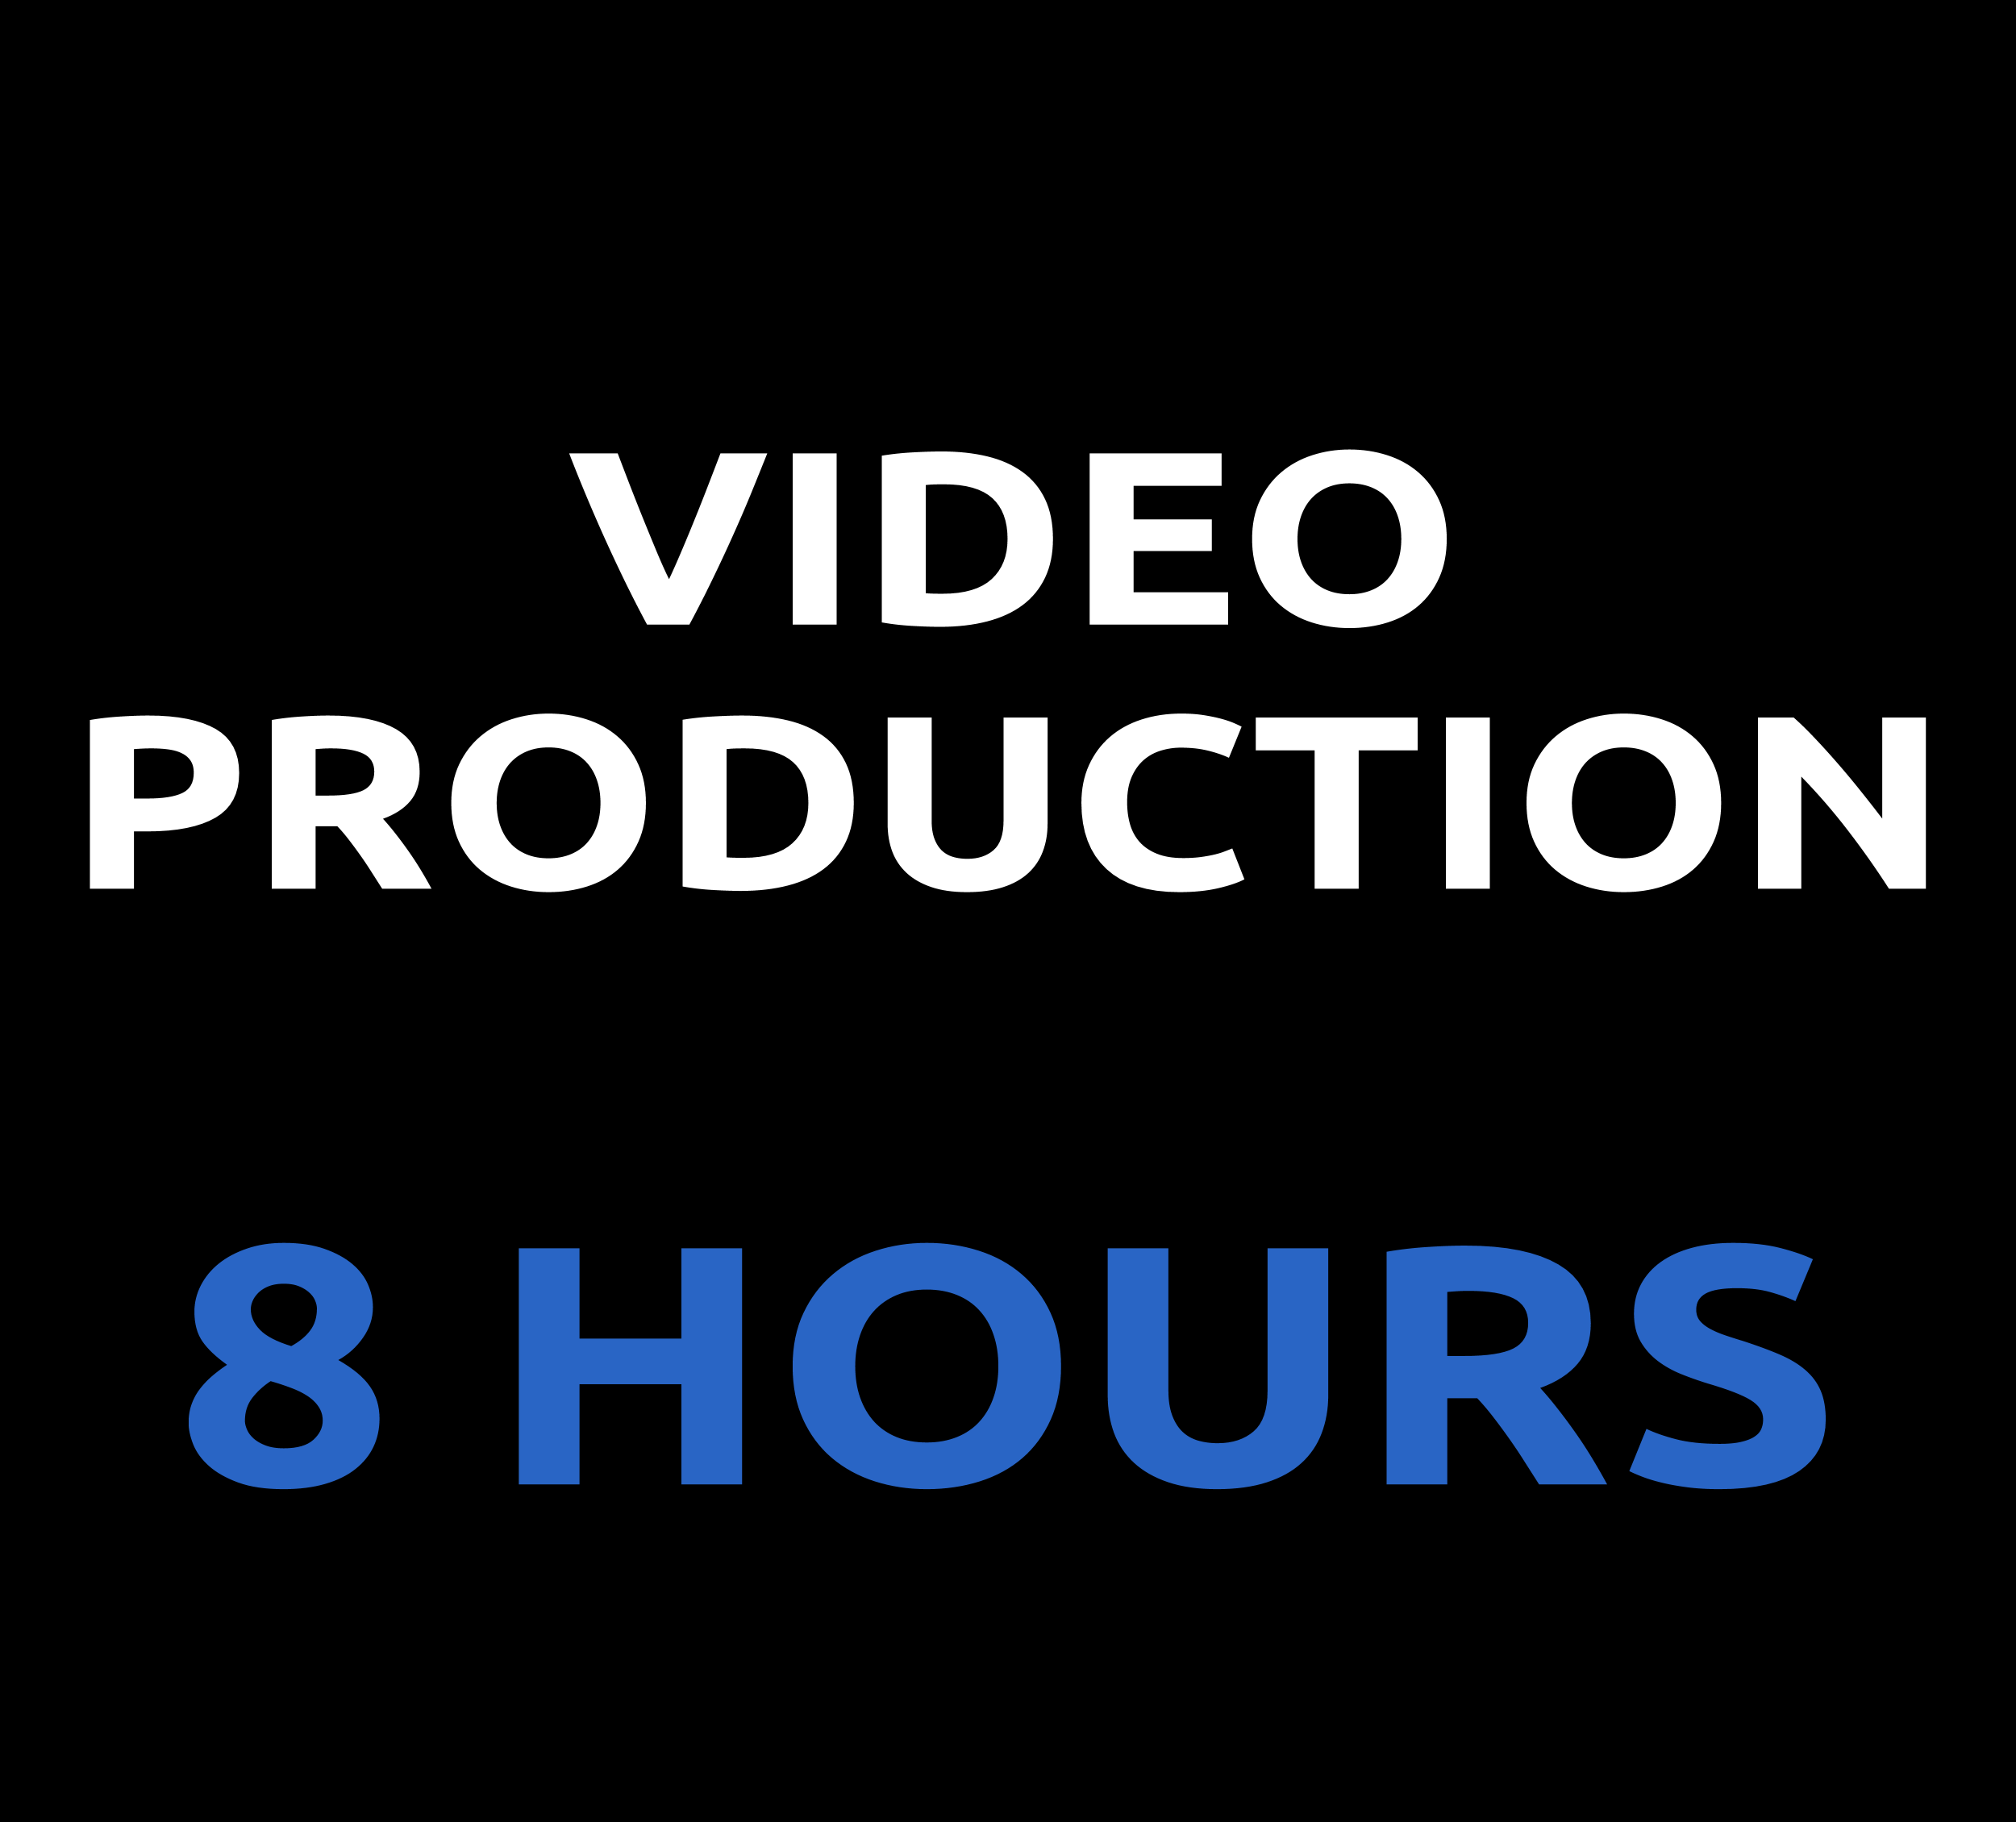 VIDEO PRODUCTION- 8 HOURS 08